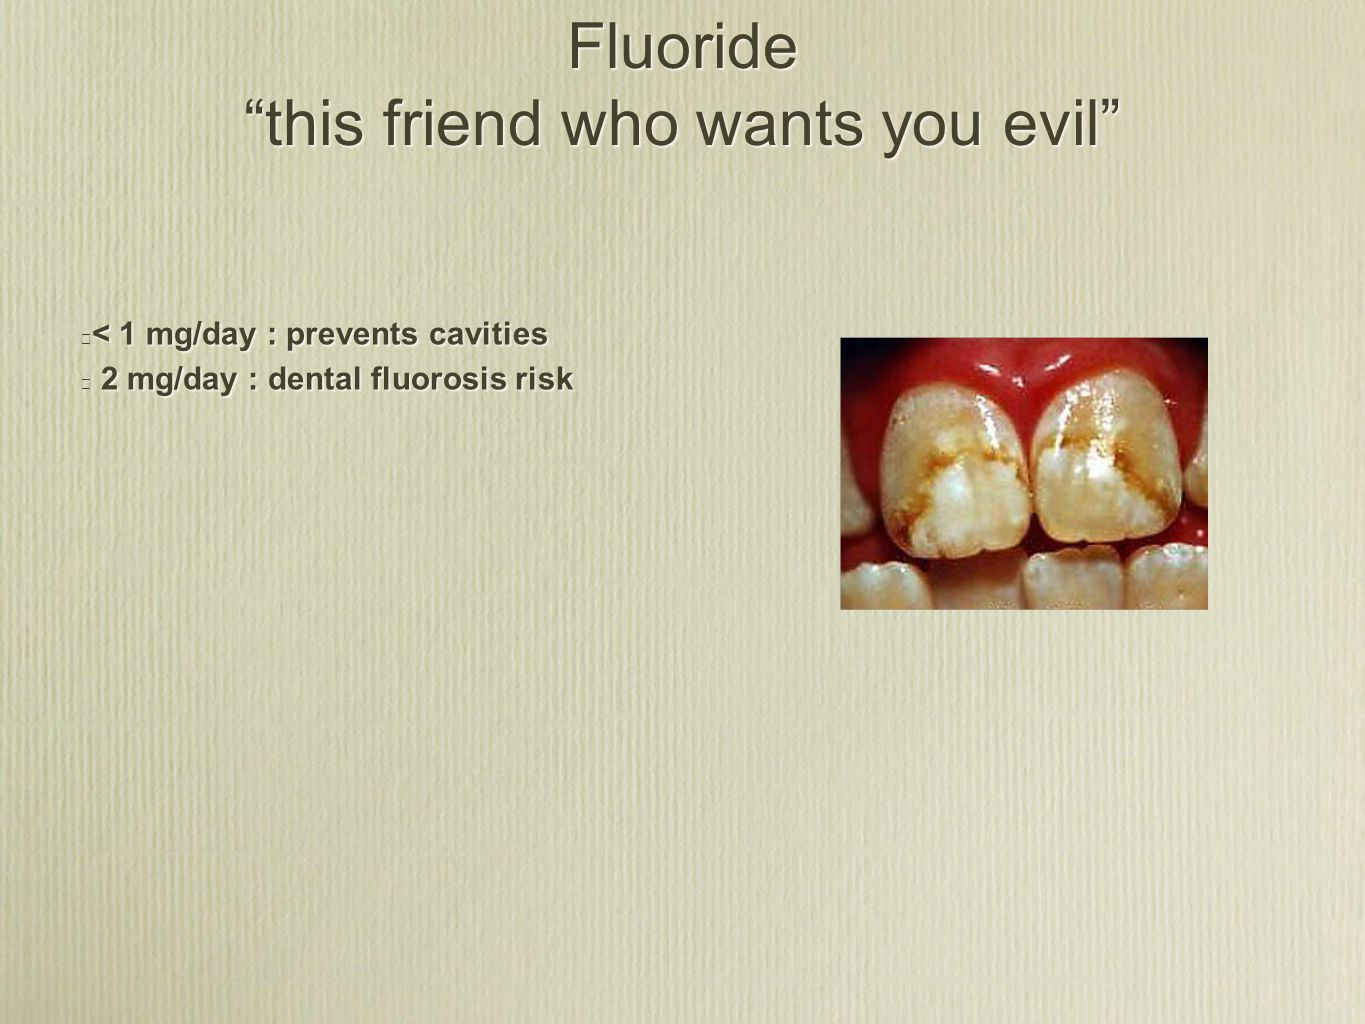 Fluoride this friend who wants you evil ★ < 1 mg/day : prevents cavities ★ 2 mg/day : dental fluorosis risk ★ < 1 mg/day : prevents cavities ★ 2 mg/day : dental fluorosis risk